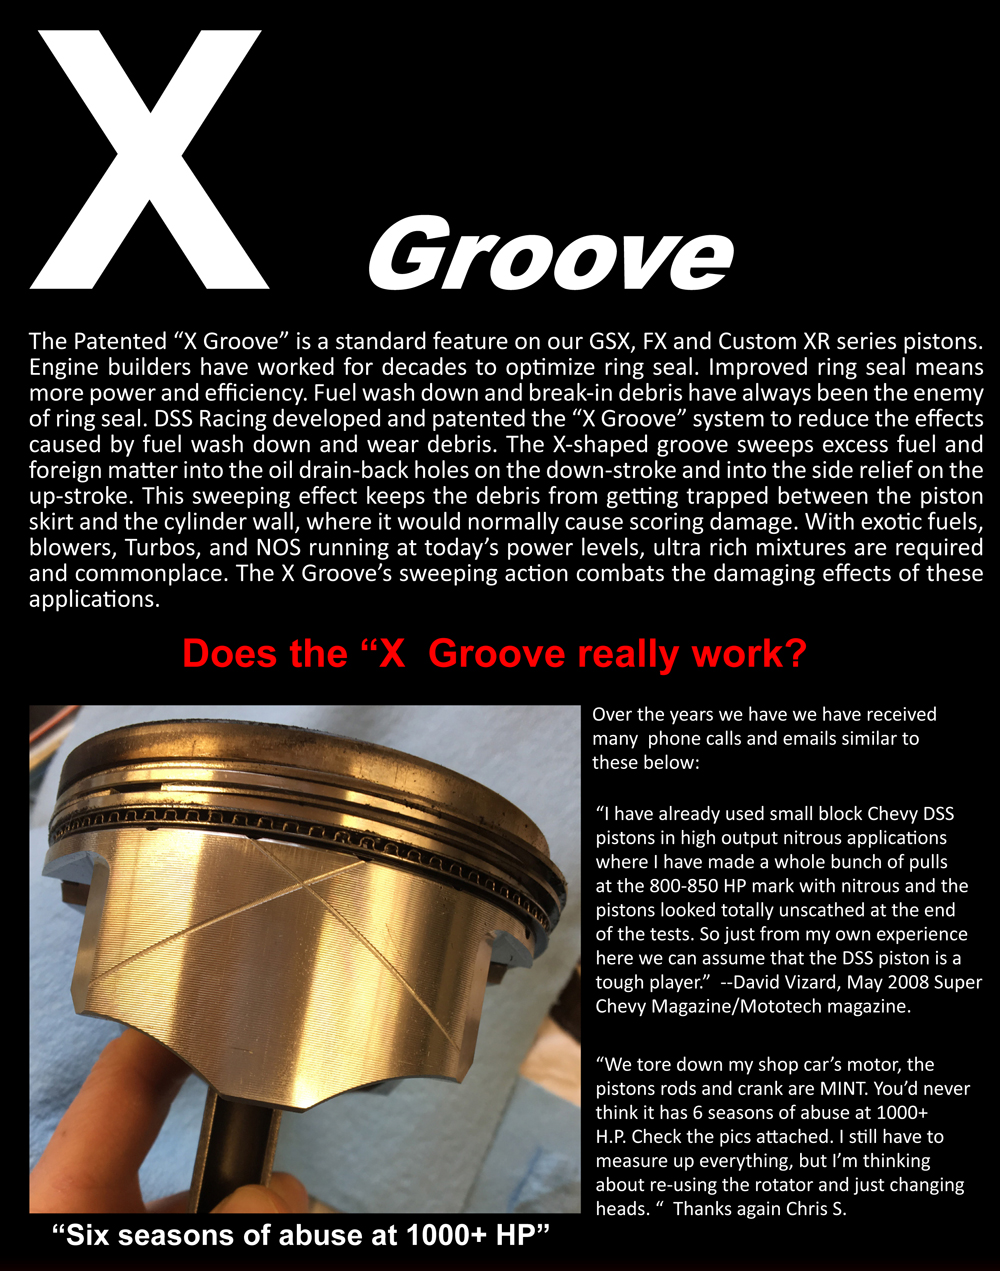 dss racing piston skirt X groove explained